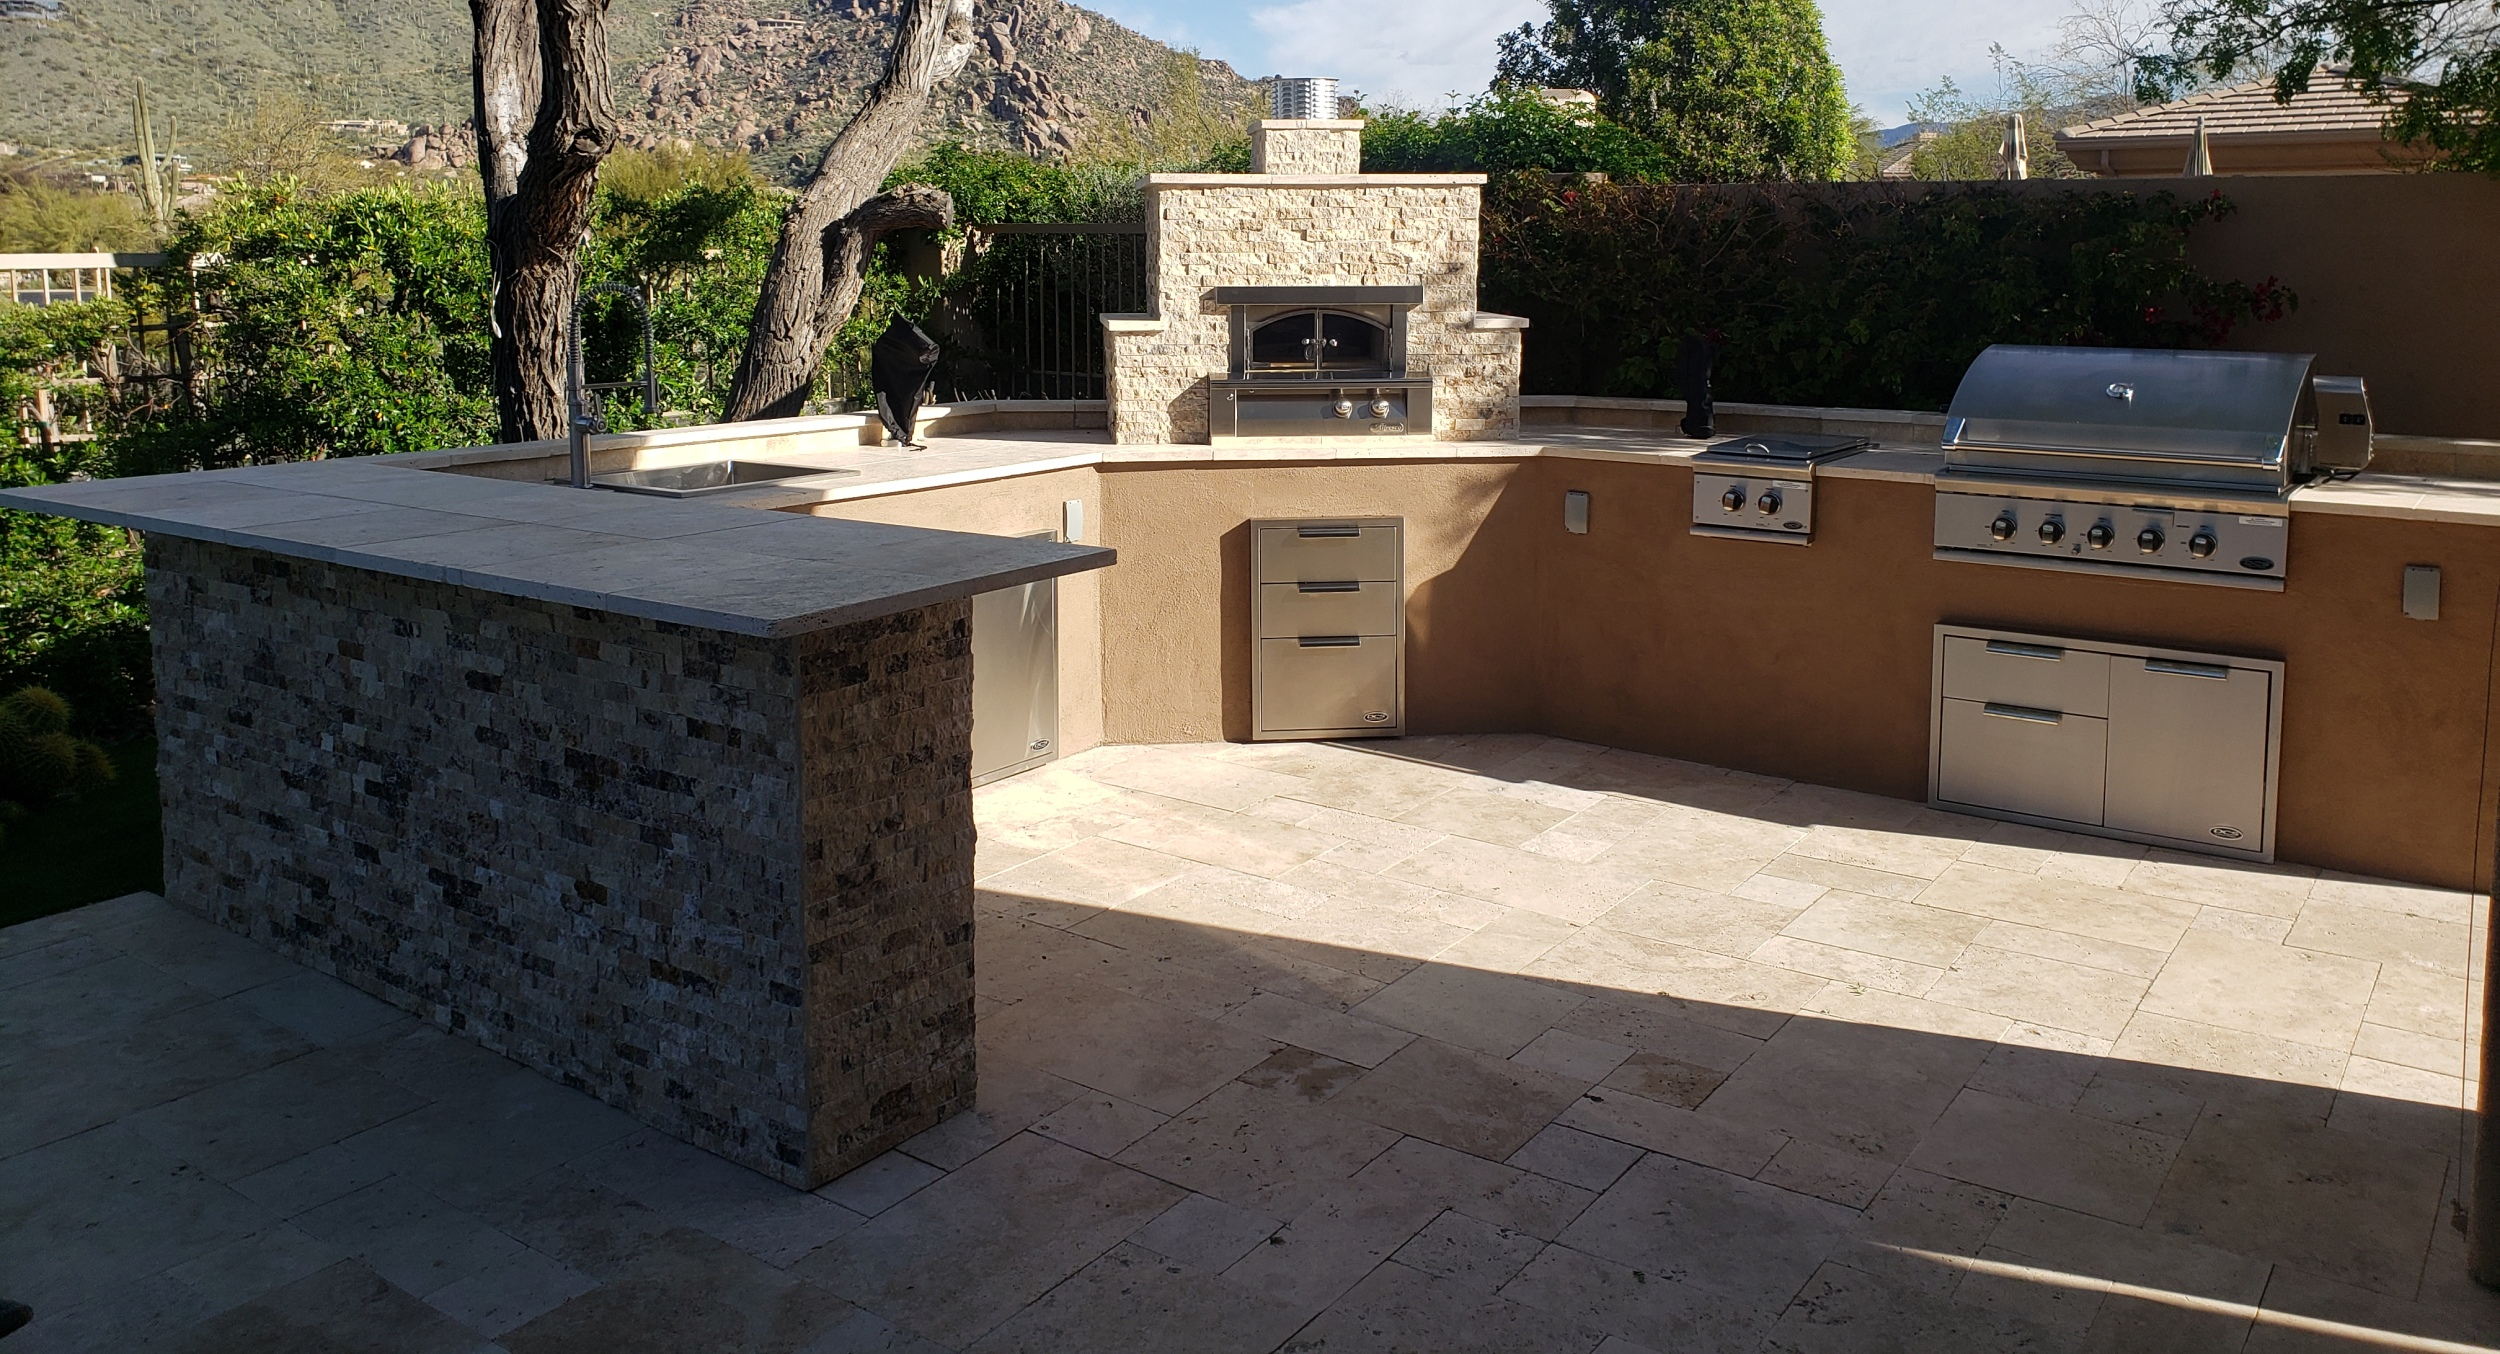 Recently designed and installed outdoor kitchen. Scottsdale clients added all the in-demand items, including an outdoor pizza oven.